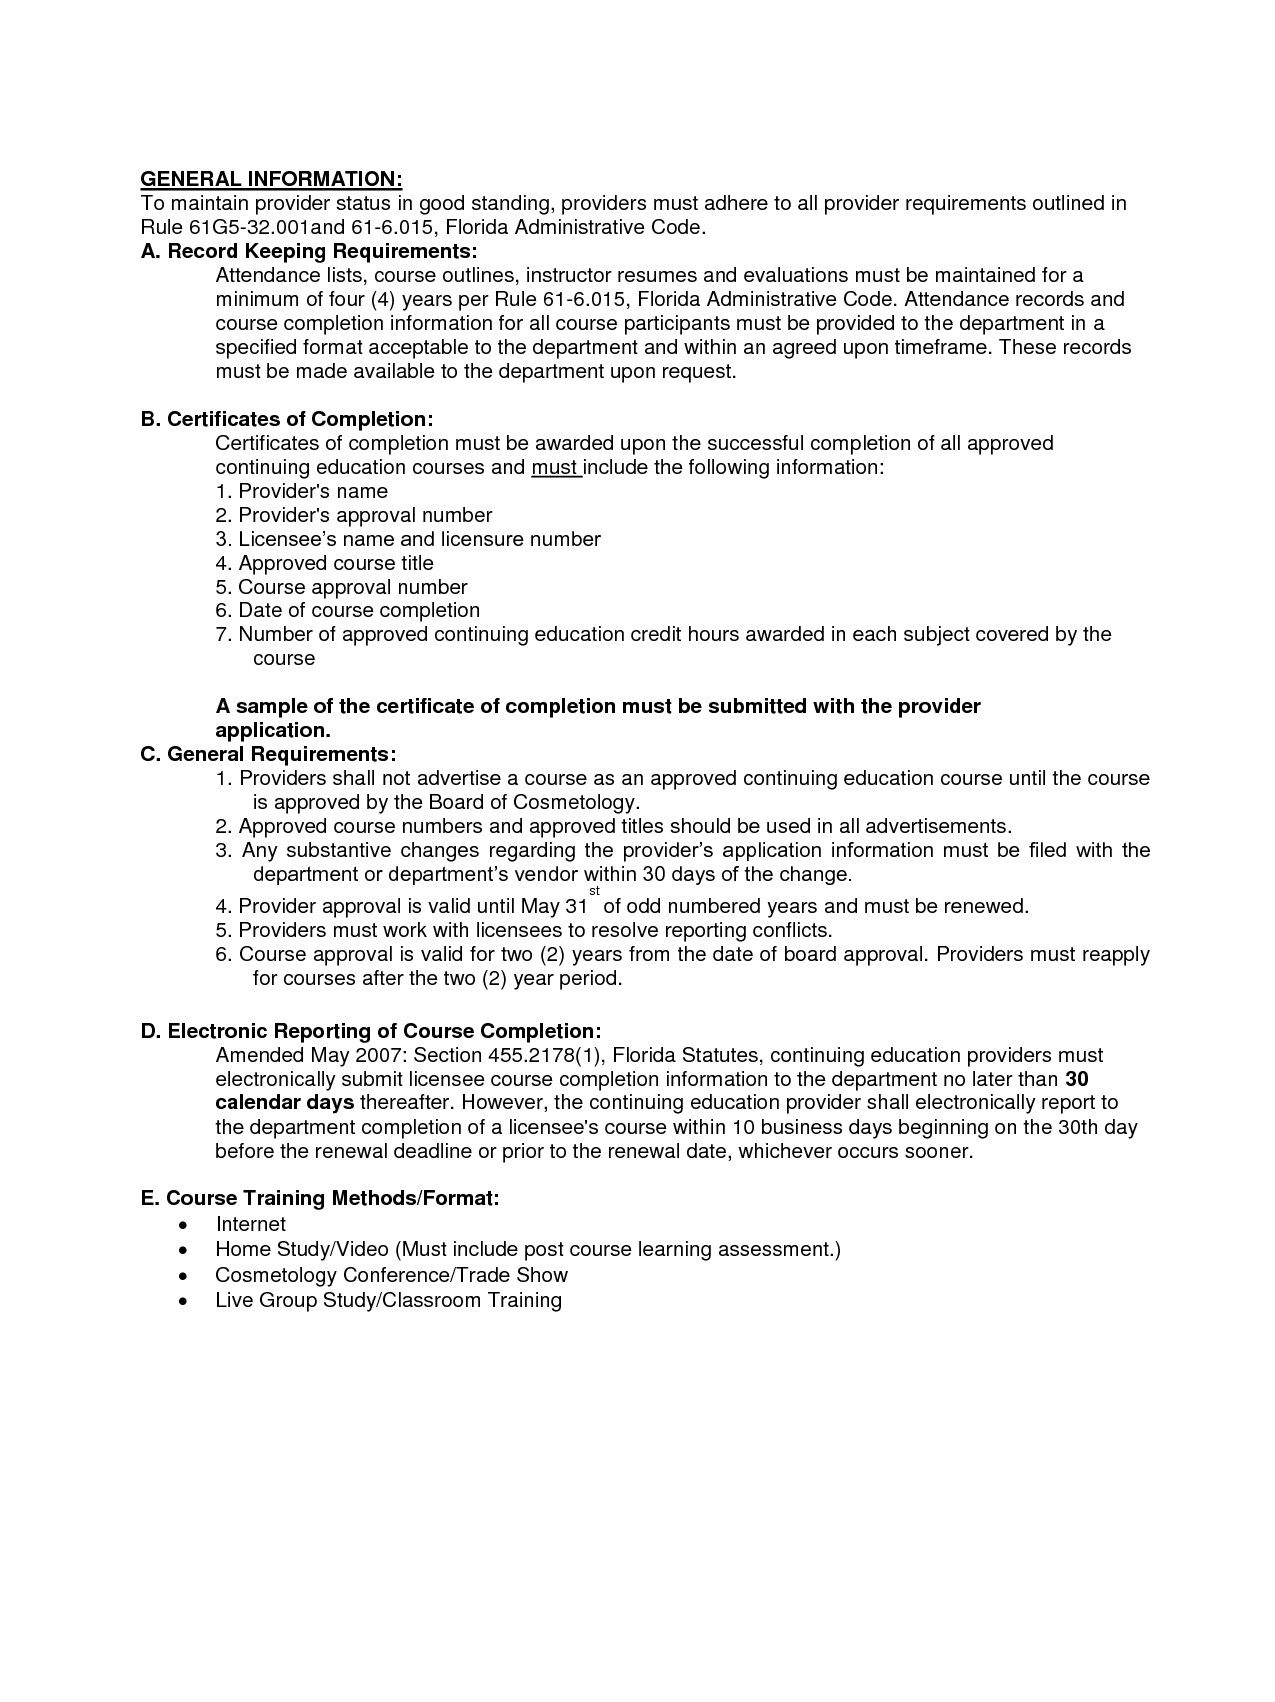 Resume For Cosmetology Instructor